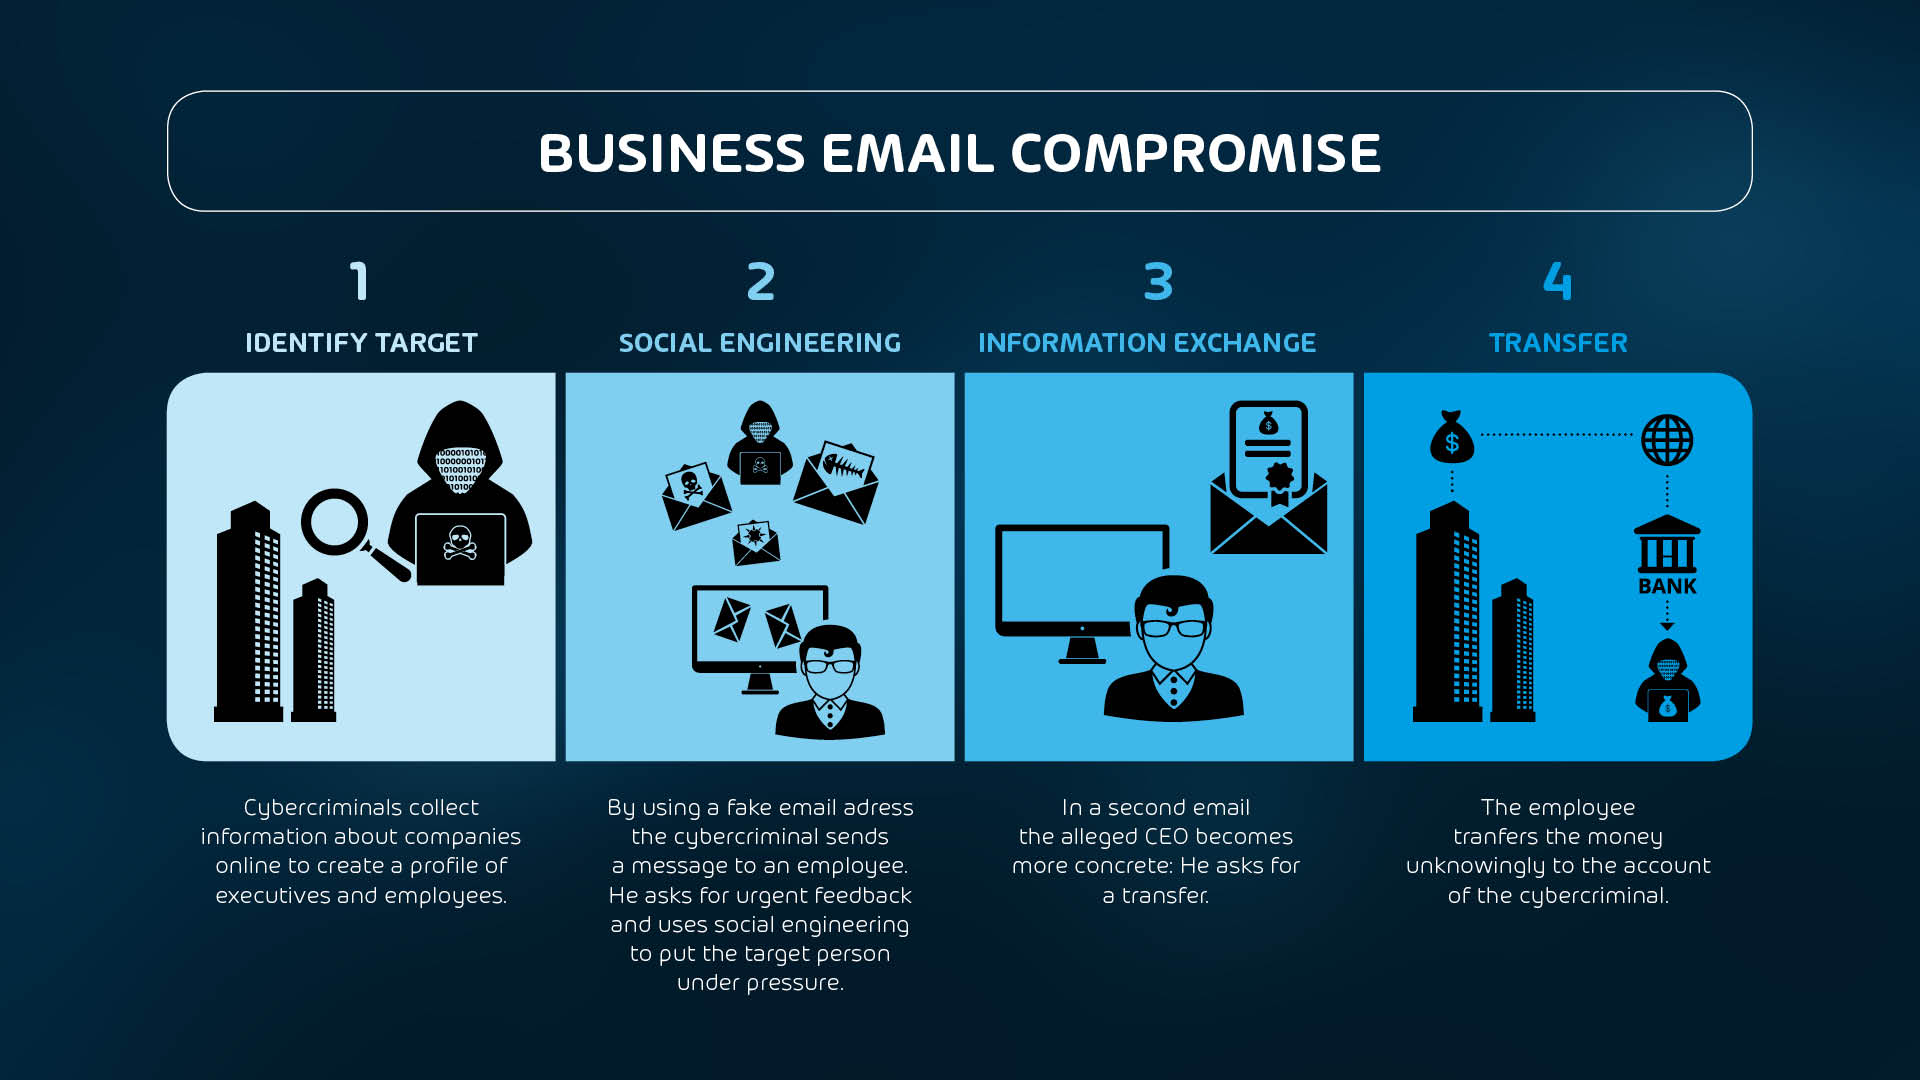 Infographic about business email compromise